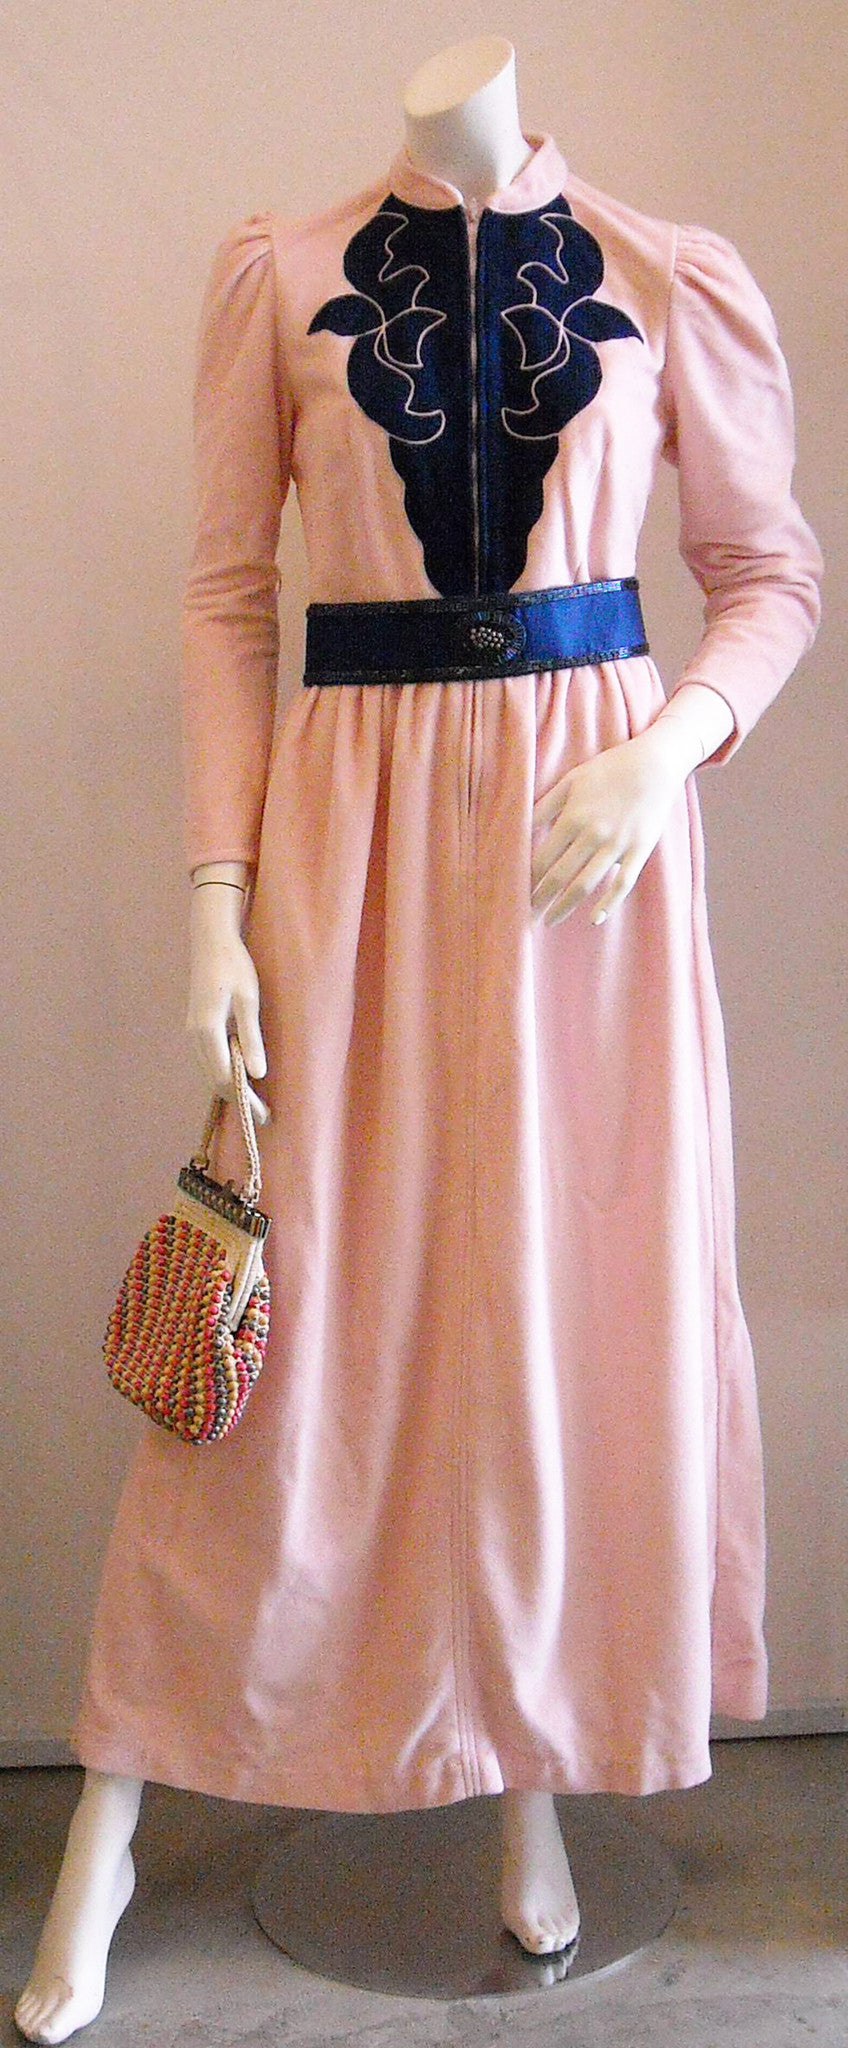 Vintage Oscar de la Renta Pink Terry Dress